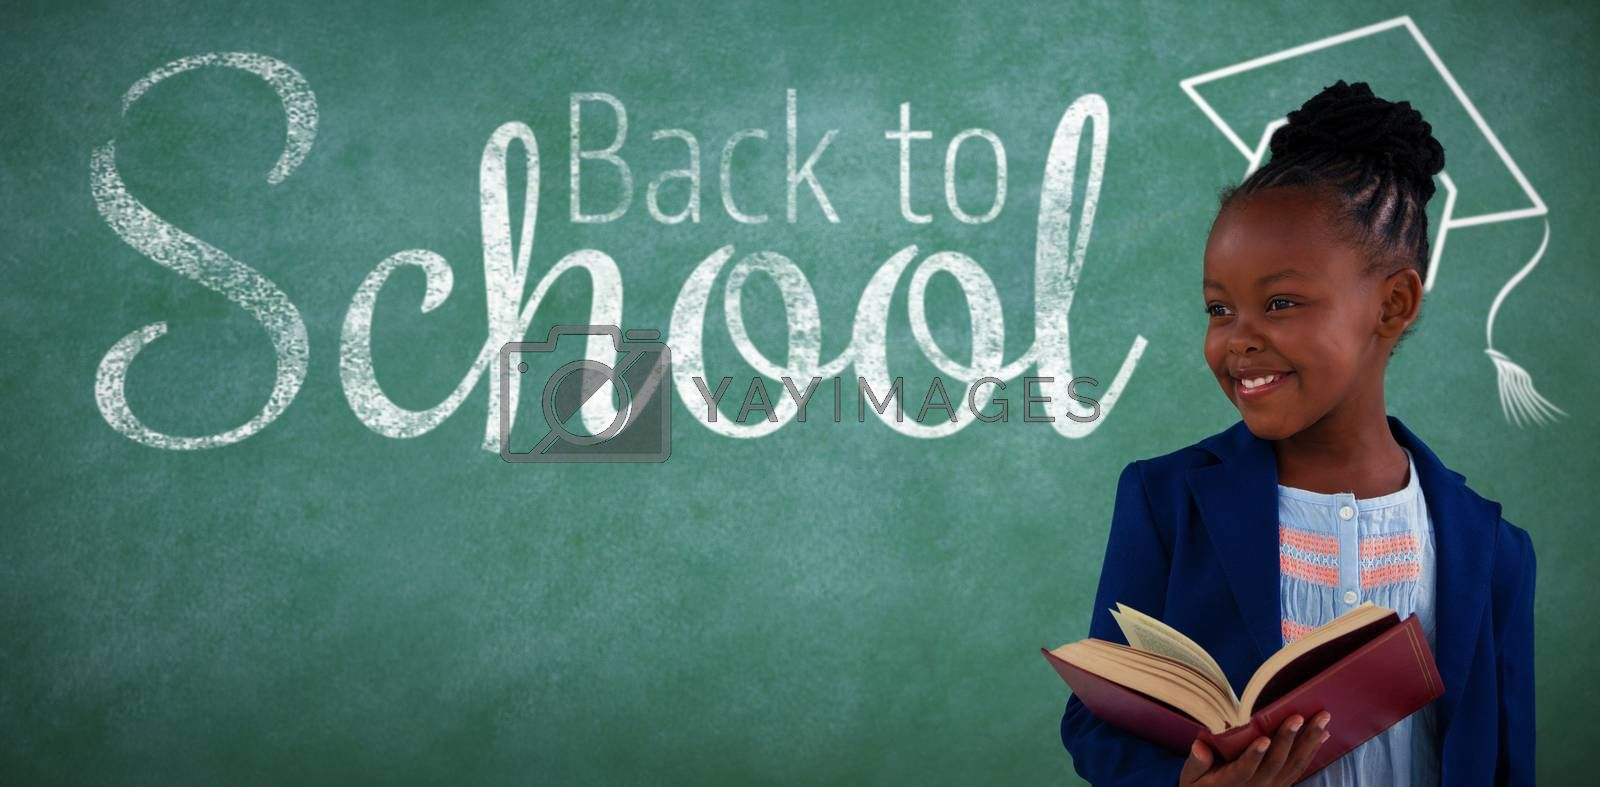 Composite image of digital image of back to school text by Wavebreakmedia